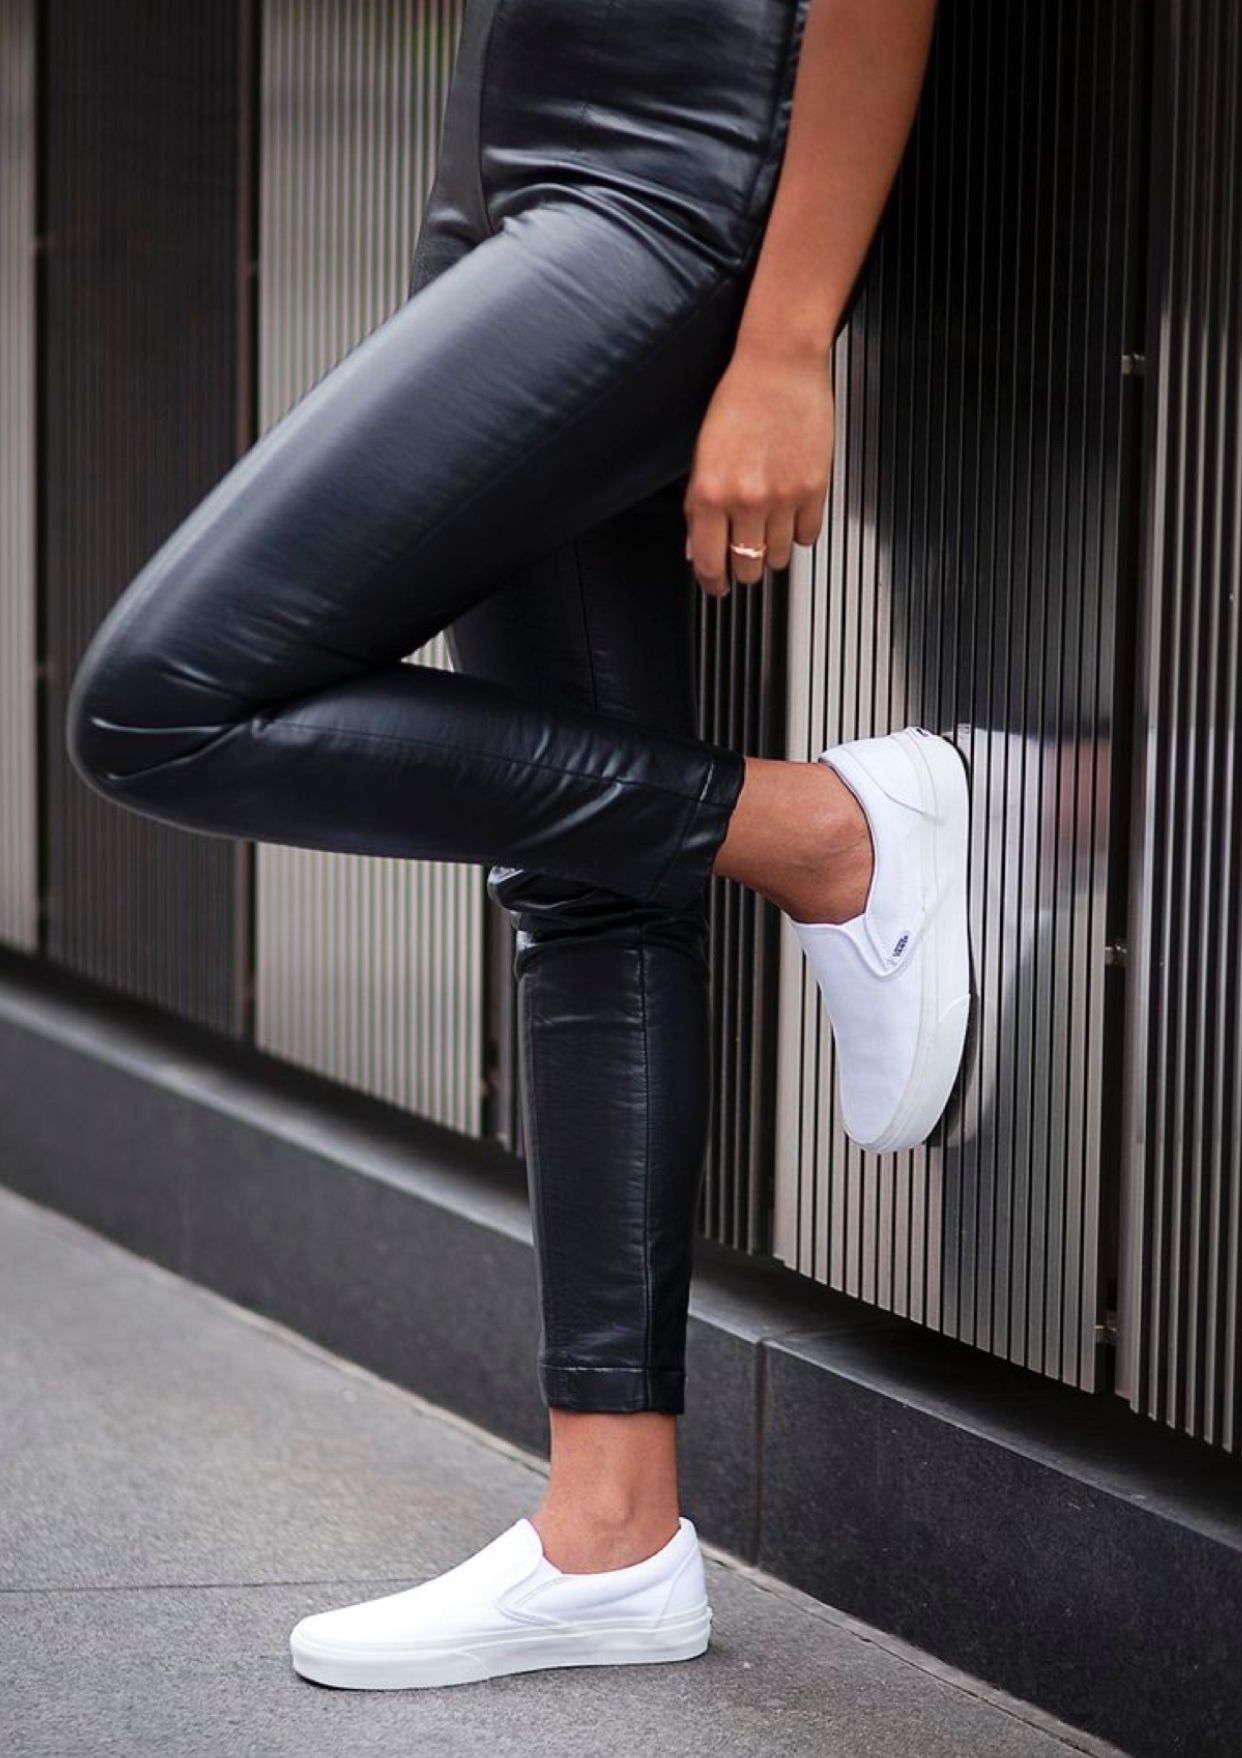 Pin By Elin Linden On All Dressed Up White Slip On Vans Slip Ons Outfit White Slip On Vans Outfit [ 1758 x 1242 Pixel ]